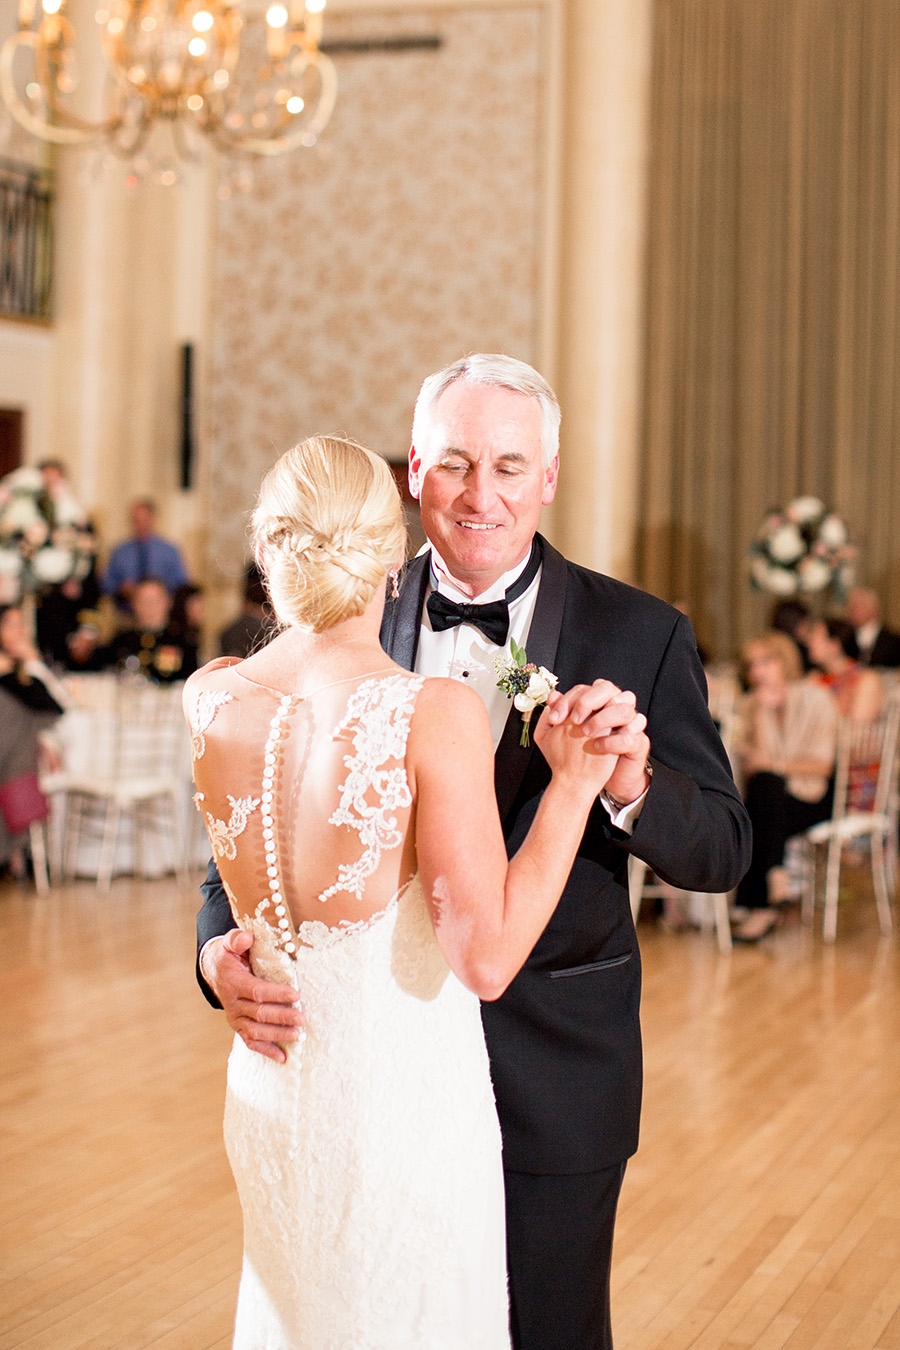 dupont country club wedding where bride dances with her dad in the ballroom